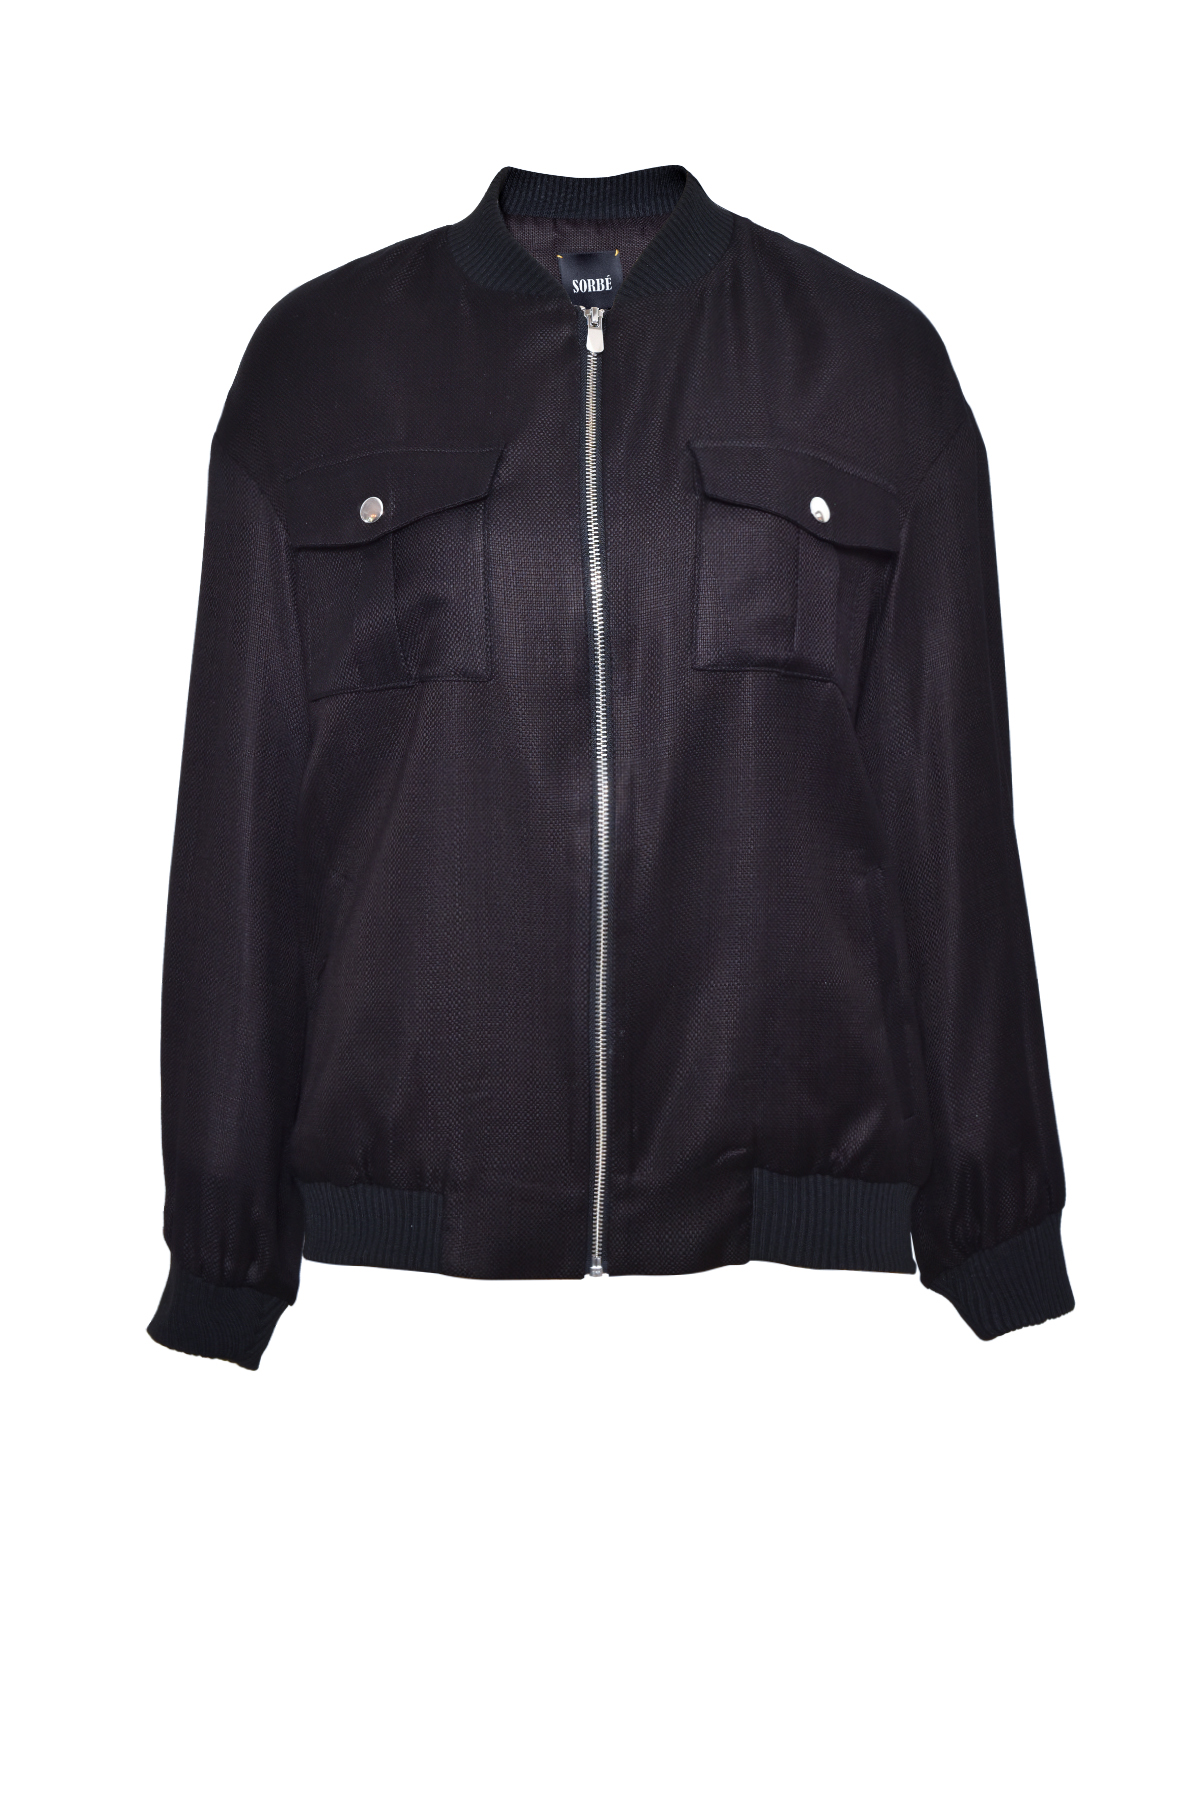 Bomber Jacket - Black by Sorbé on curated-crowd.com